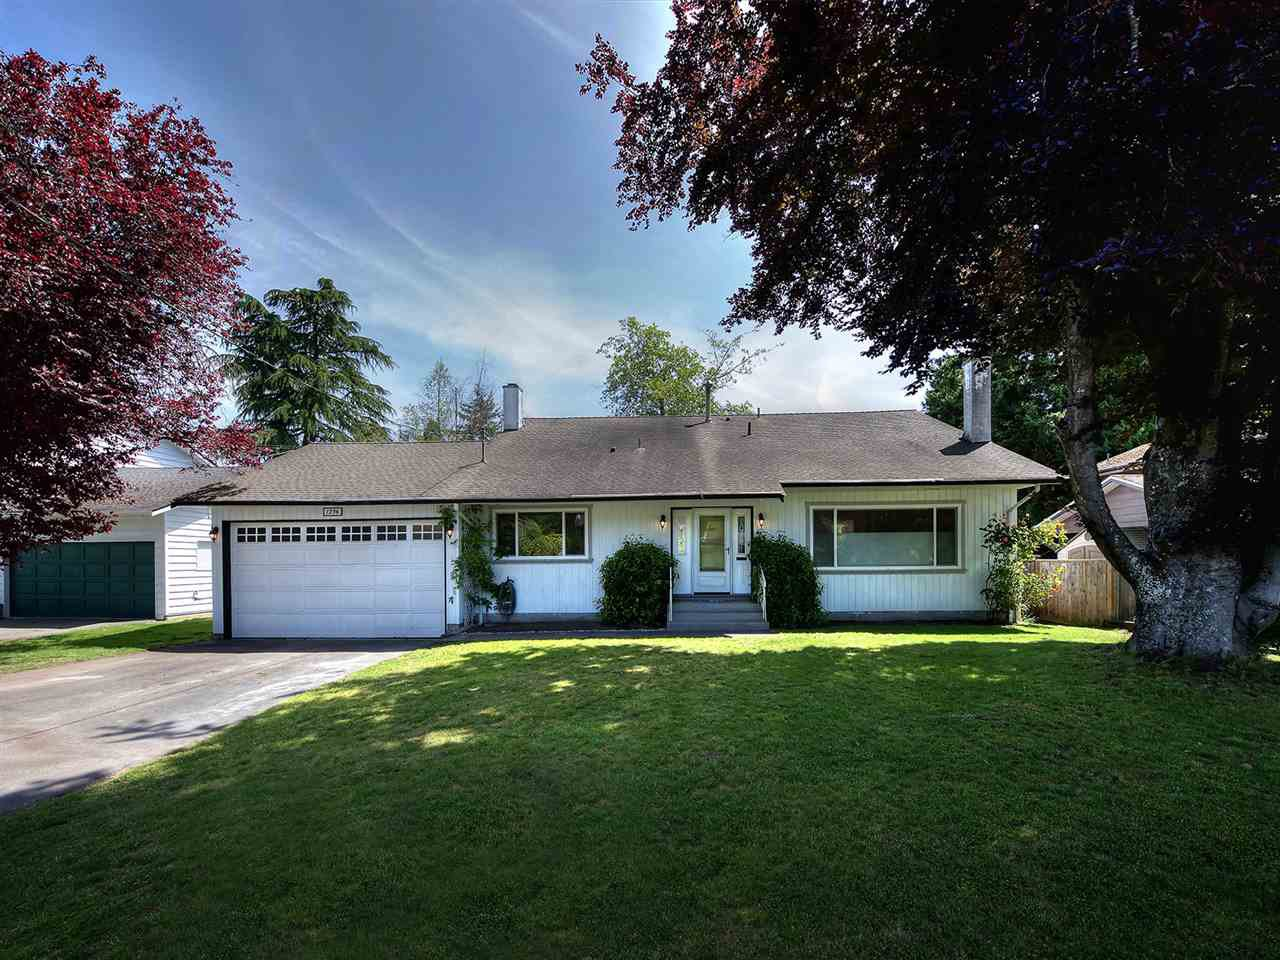 """Main Photo: 1236 52 Street in Delta: Cliff Drive House for sale in """"CLIFF DRIVE"""" (Tsawwassen)  : MLS®# R2175156"""